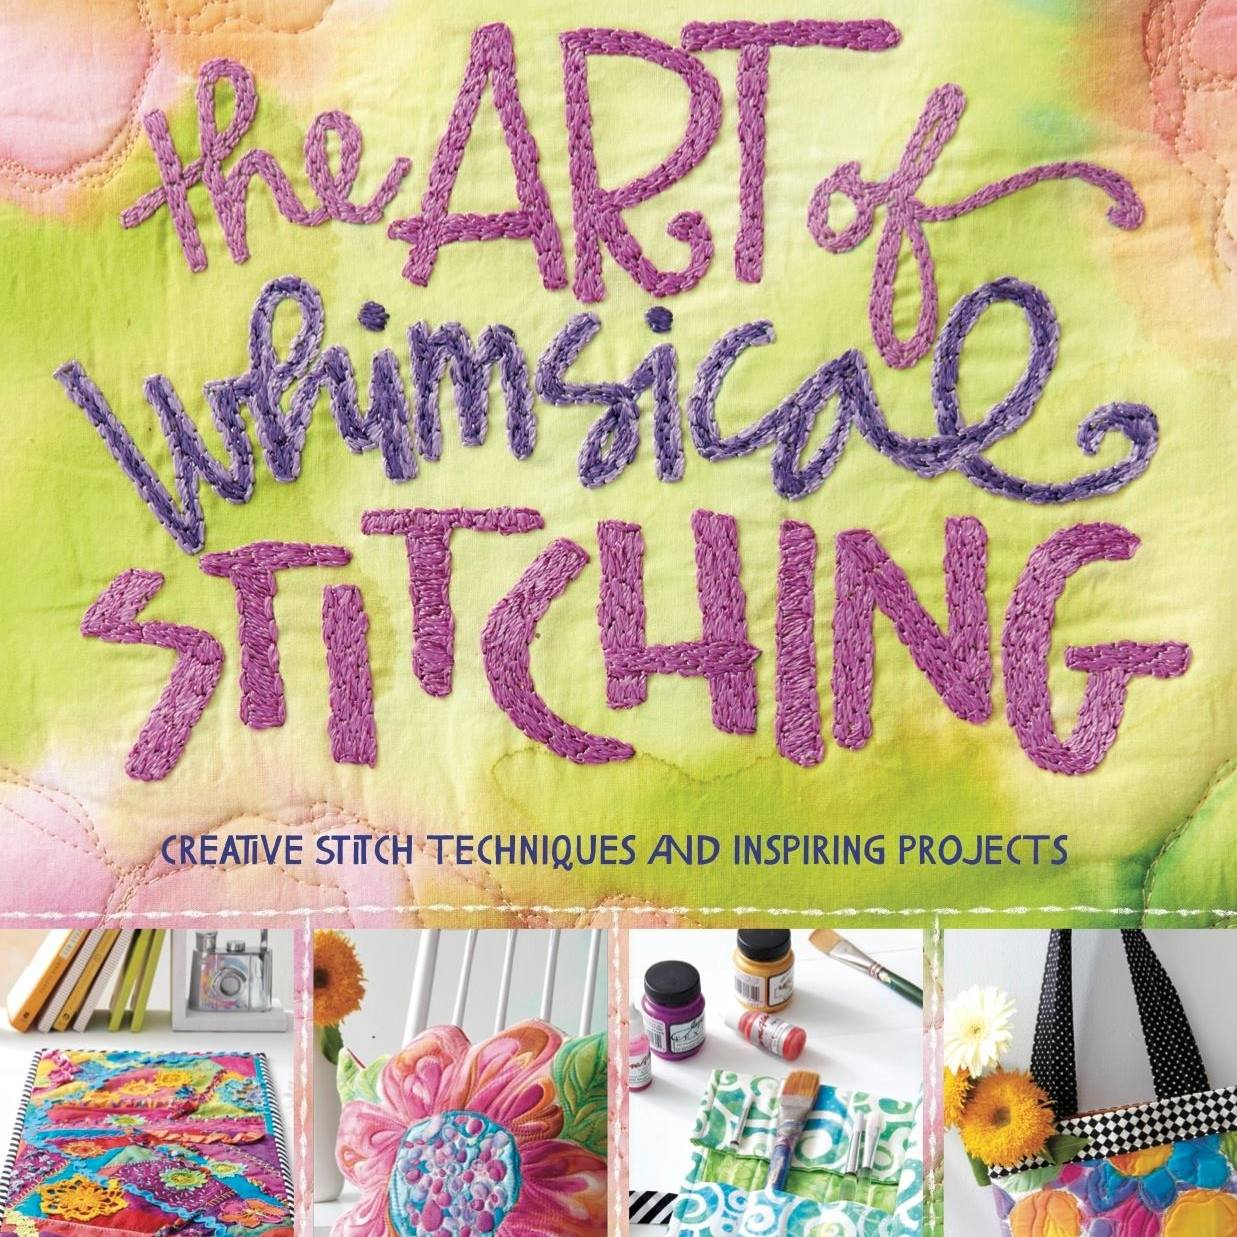 """Book Review: """"The Art of Whimsical Stitching"""" Inspires Creative Threadwork"""